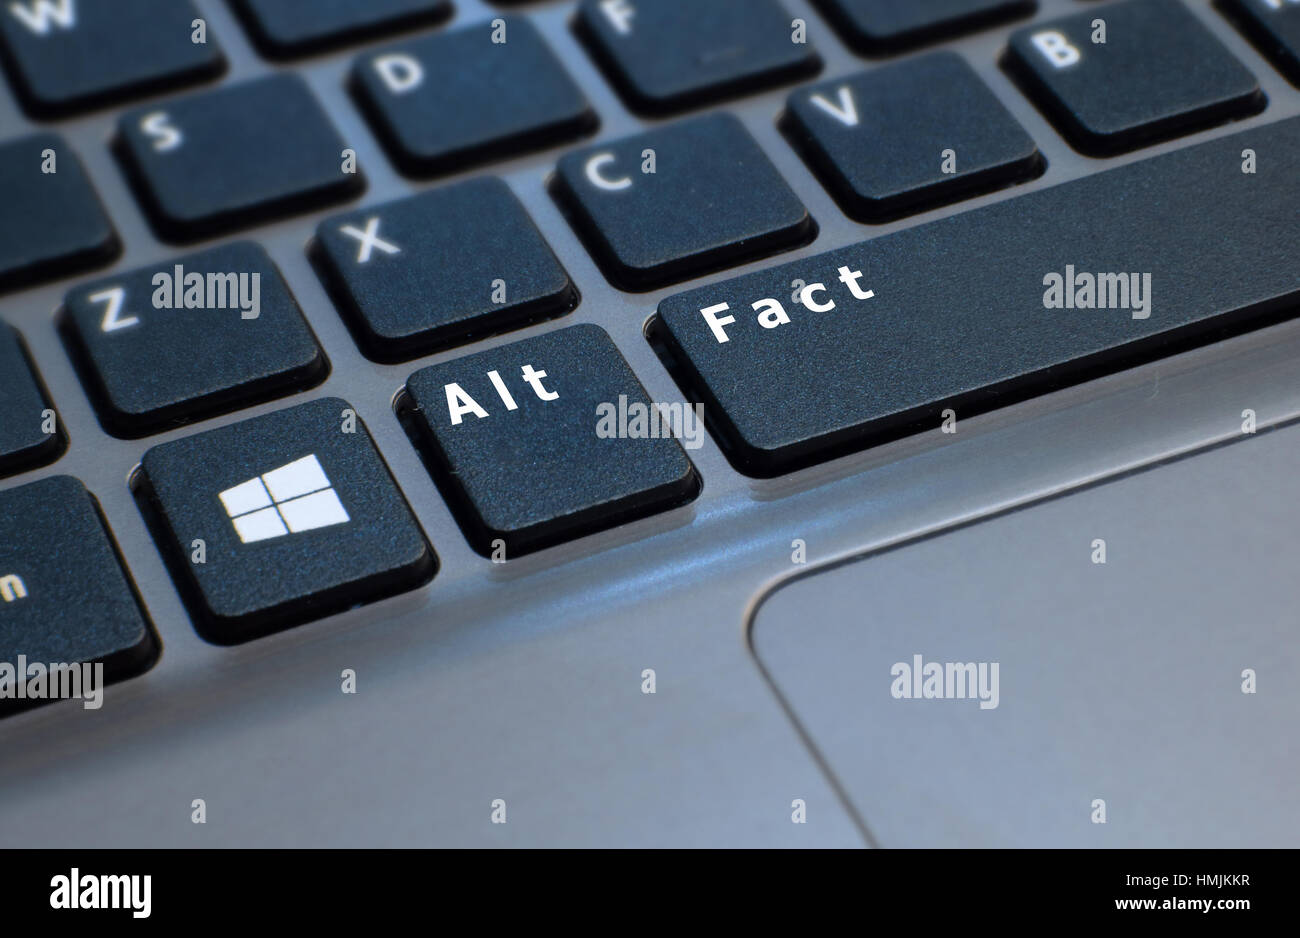 A computer keyboard retouched to show Alt FACT referencing Trump spokesman's claim to have 'alternative facts' over Stock Photo